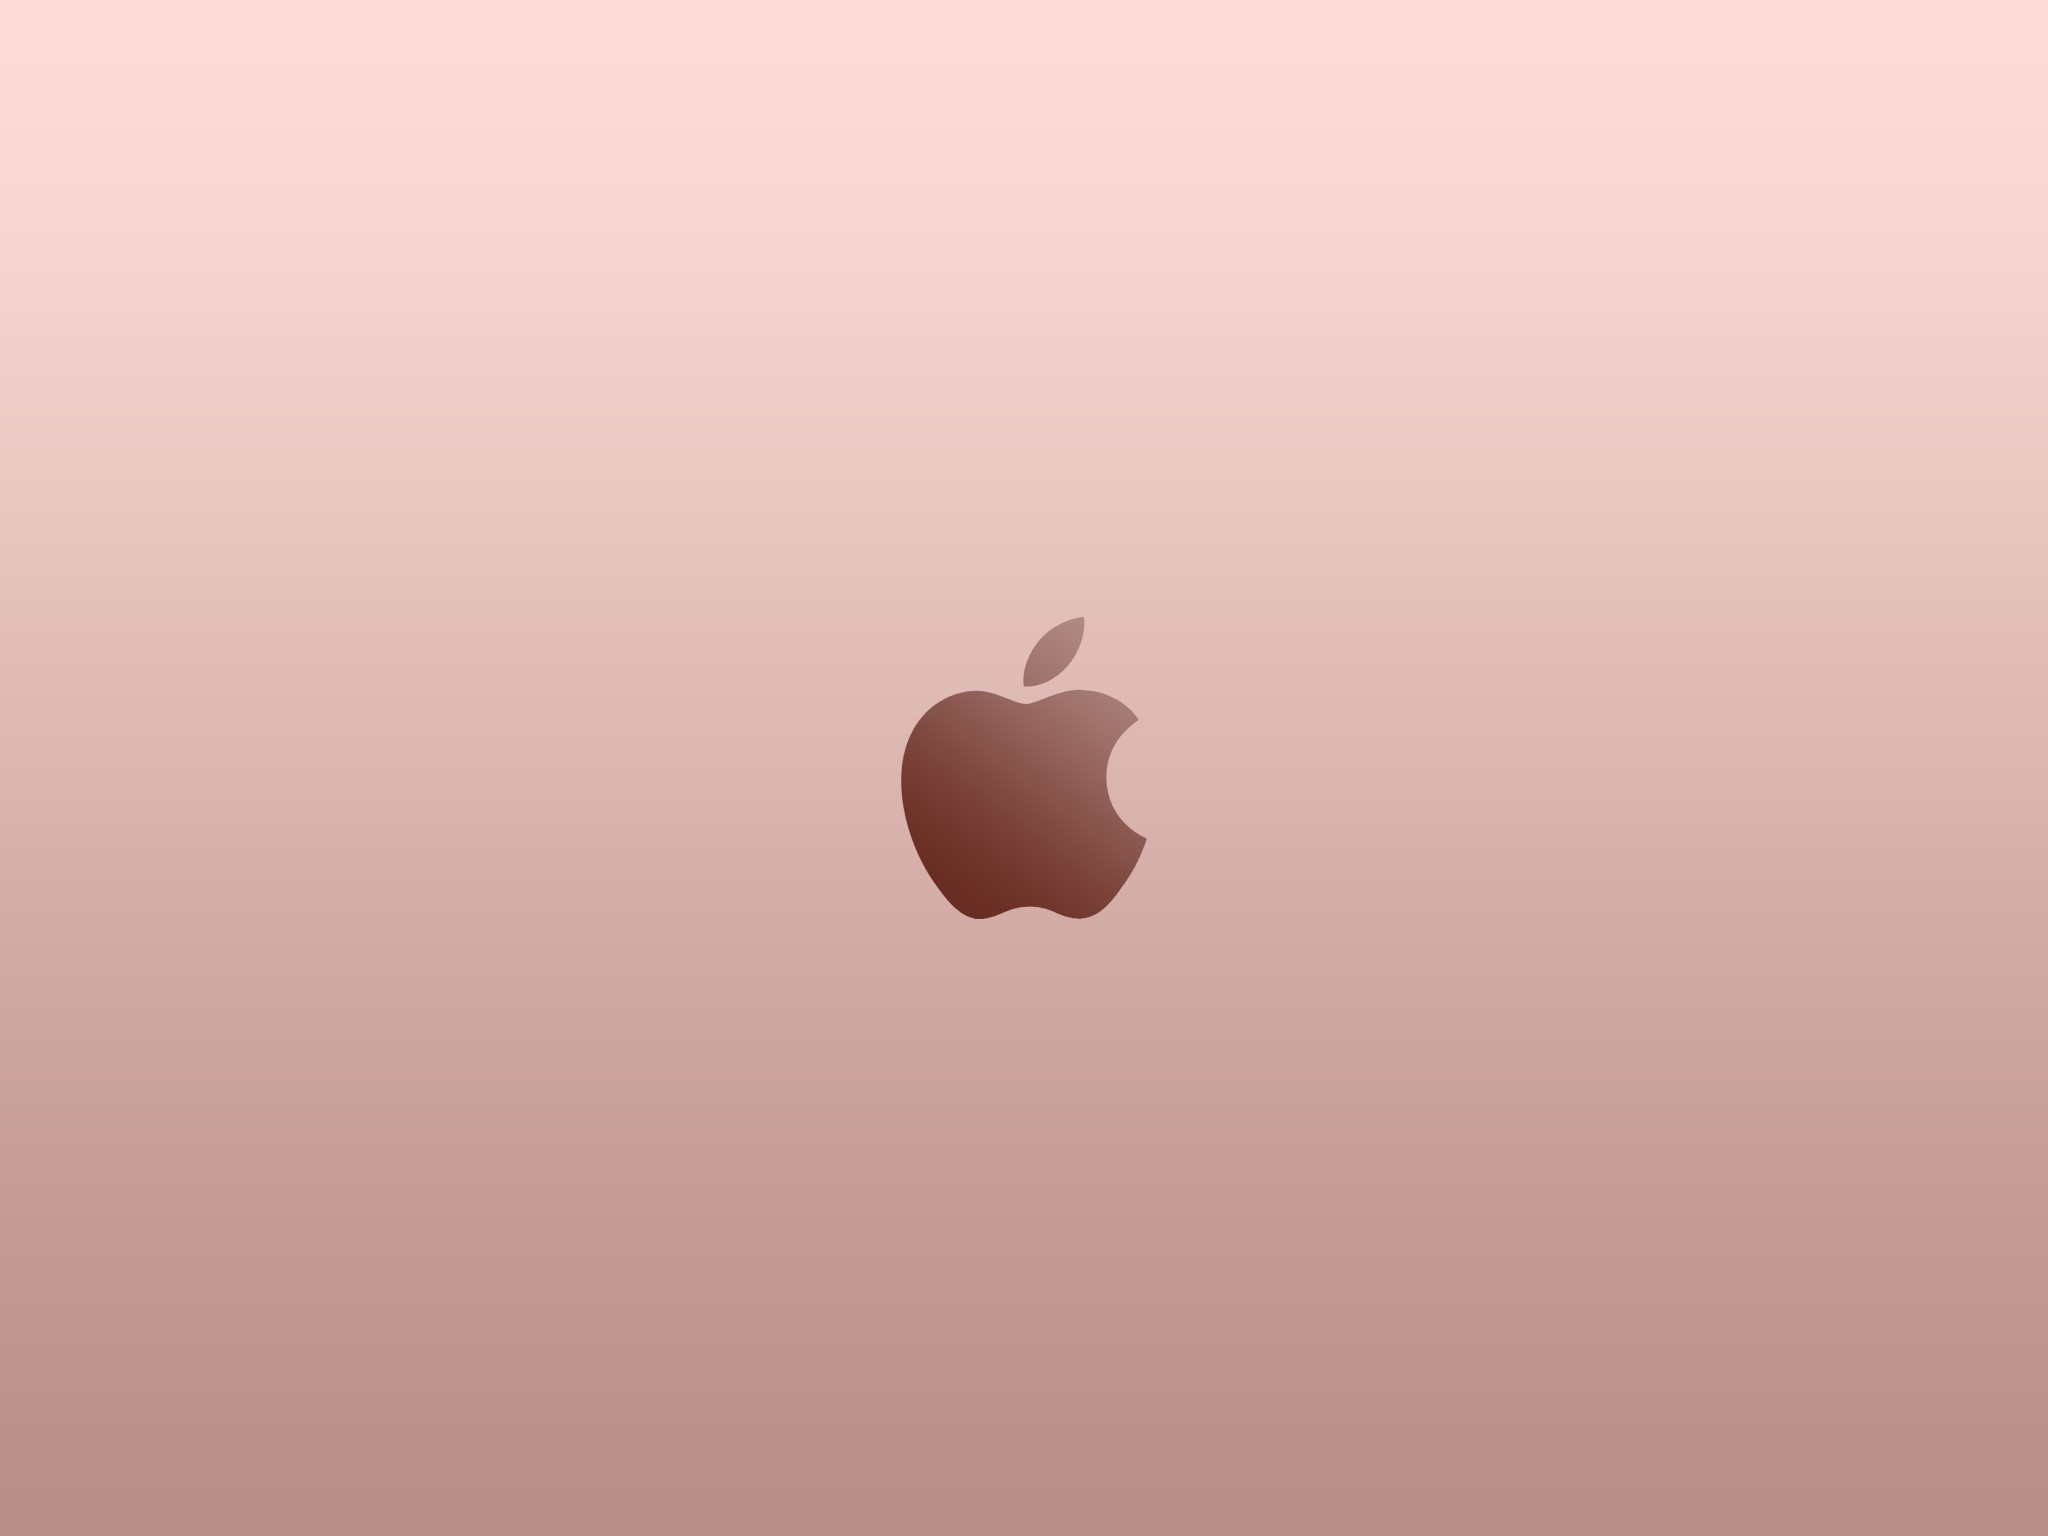 Apple Logo Rose Gold Wallpaper By Superquanganh